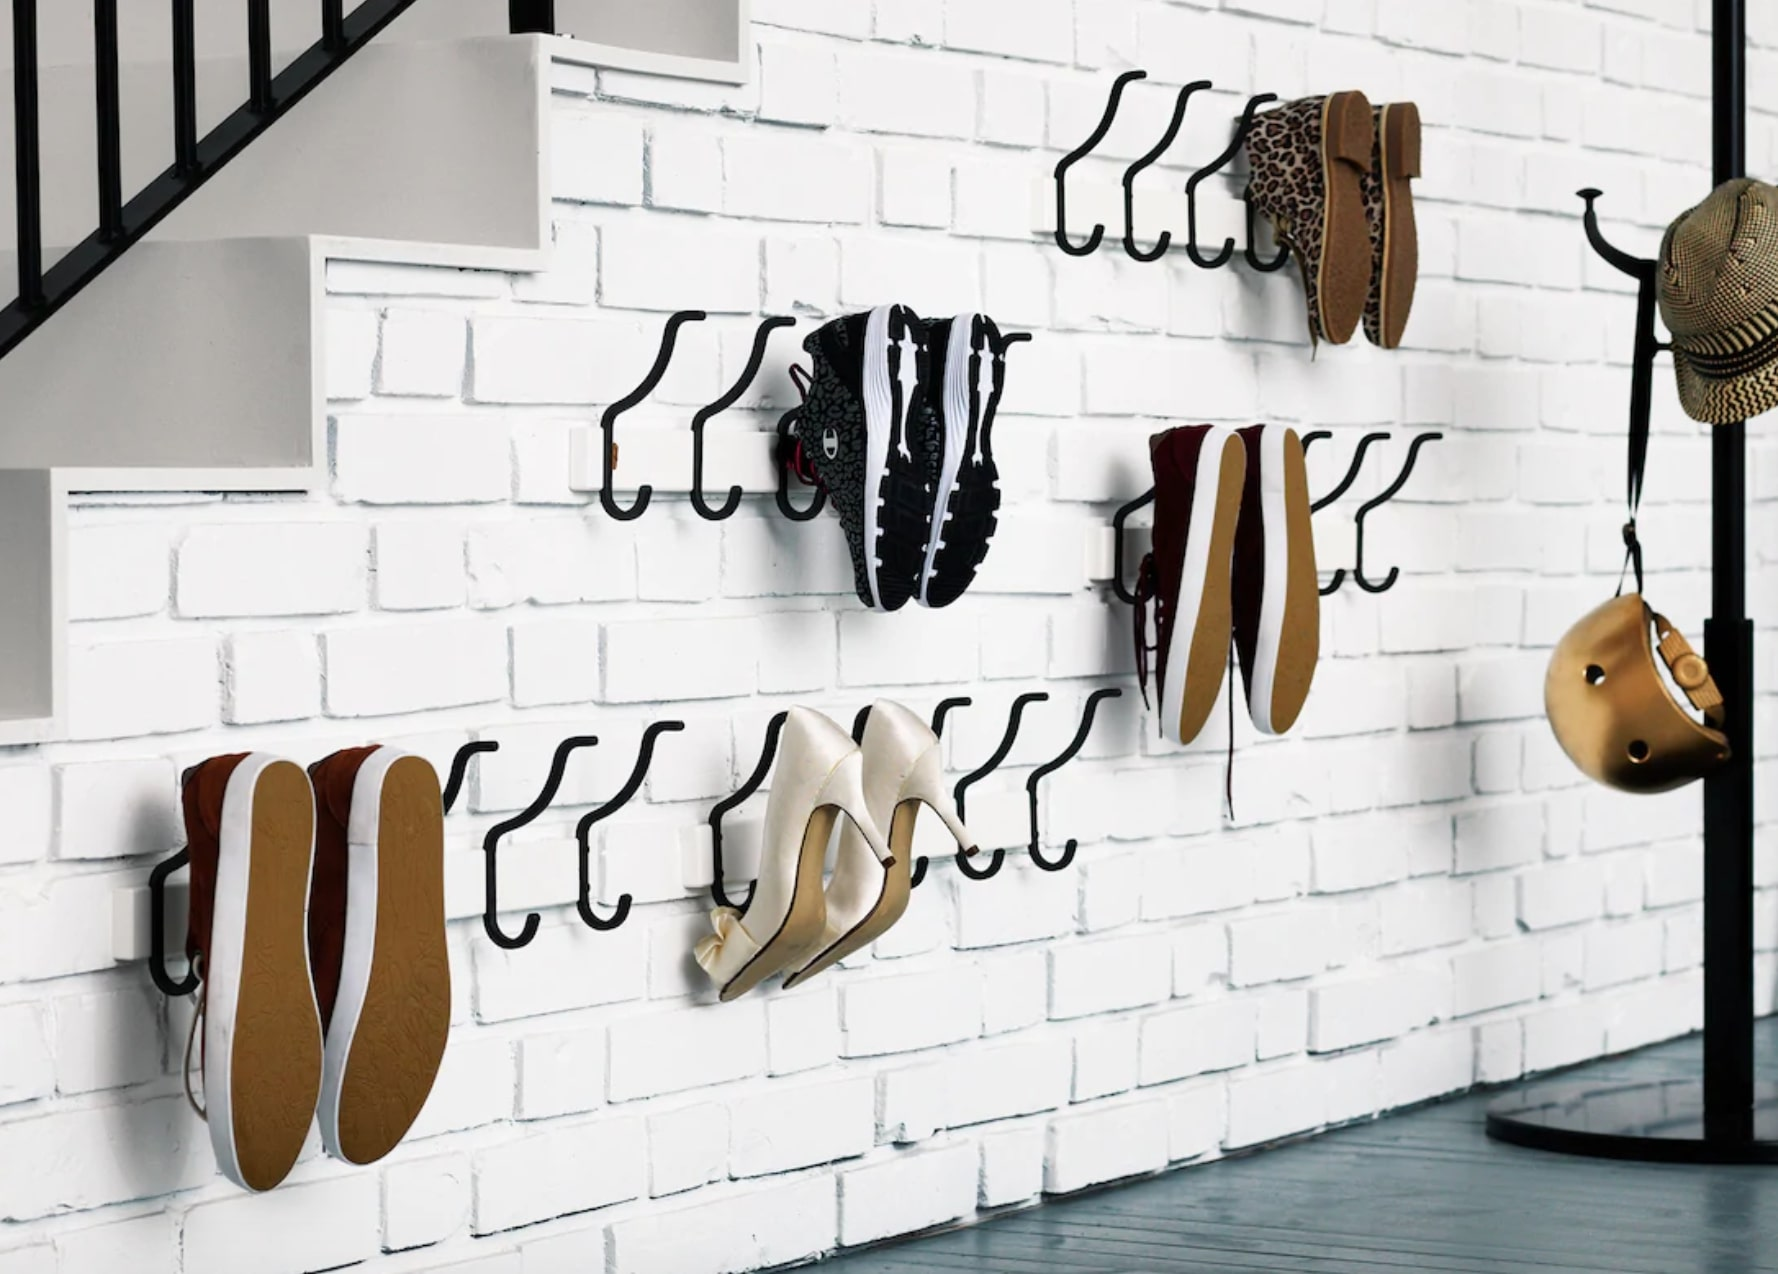 squarerooms-PINNIG-Rack-with-3-hooks-repurposed-shoe-storage-organisers